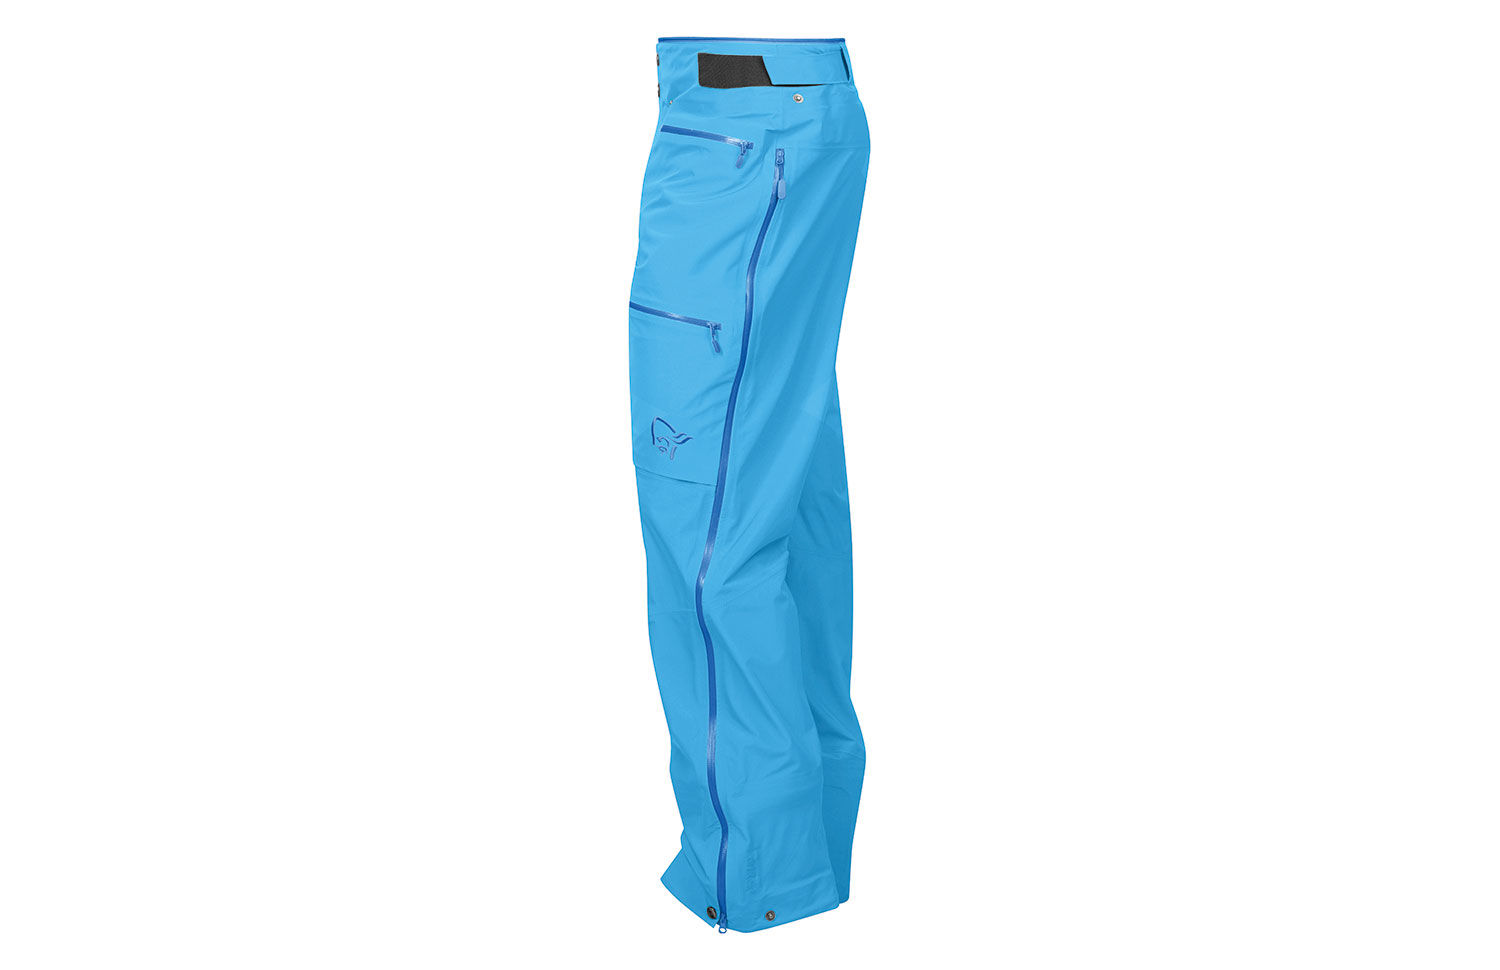 Norrøna lyngen drifelx3 pants for men